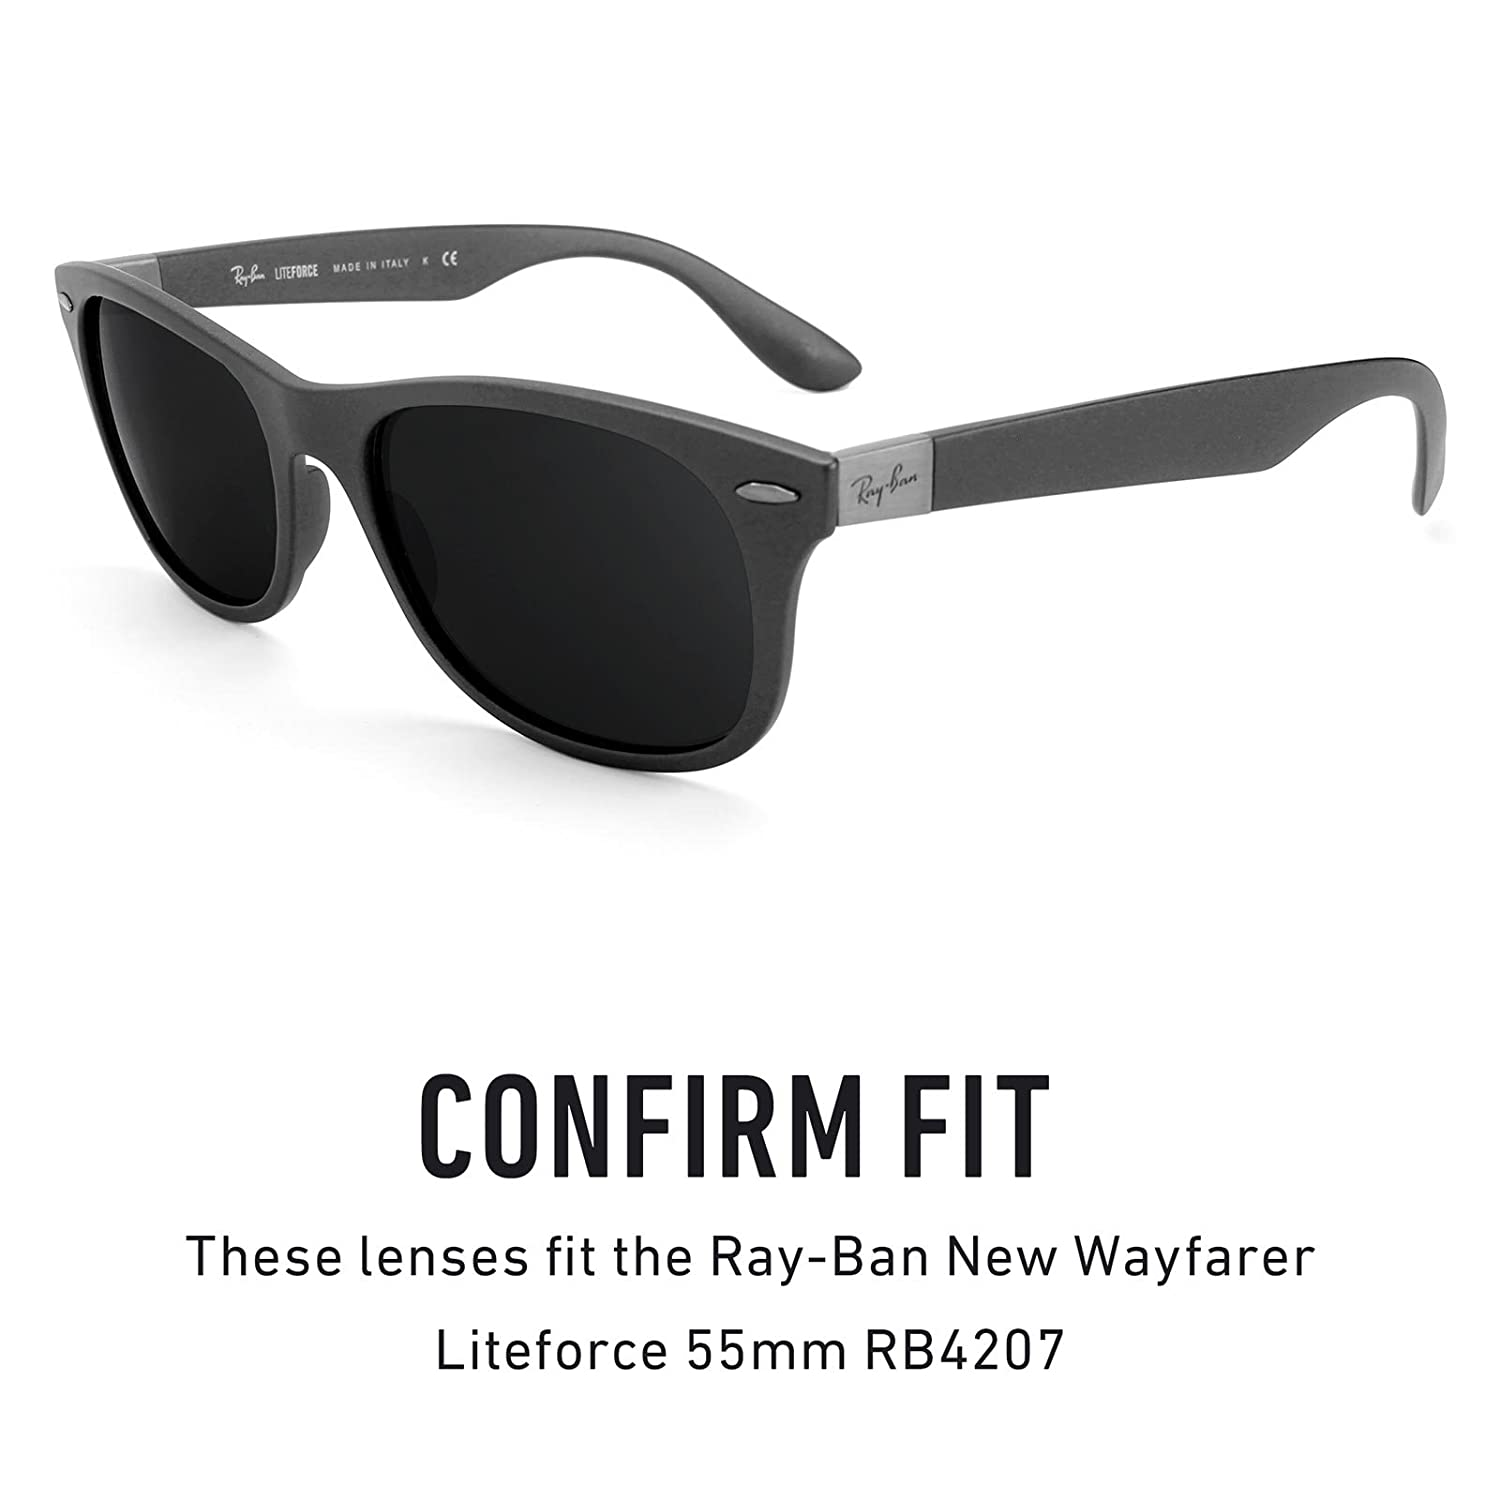 b831816d19 Revant Polarized Replacement Lenses for Ray Ban New Wayfarer Liteforce 55mm  RB4207 Black Chrome MirrorShield at Amazon Men s Clothing store